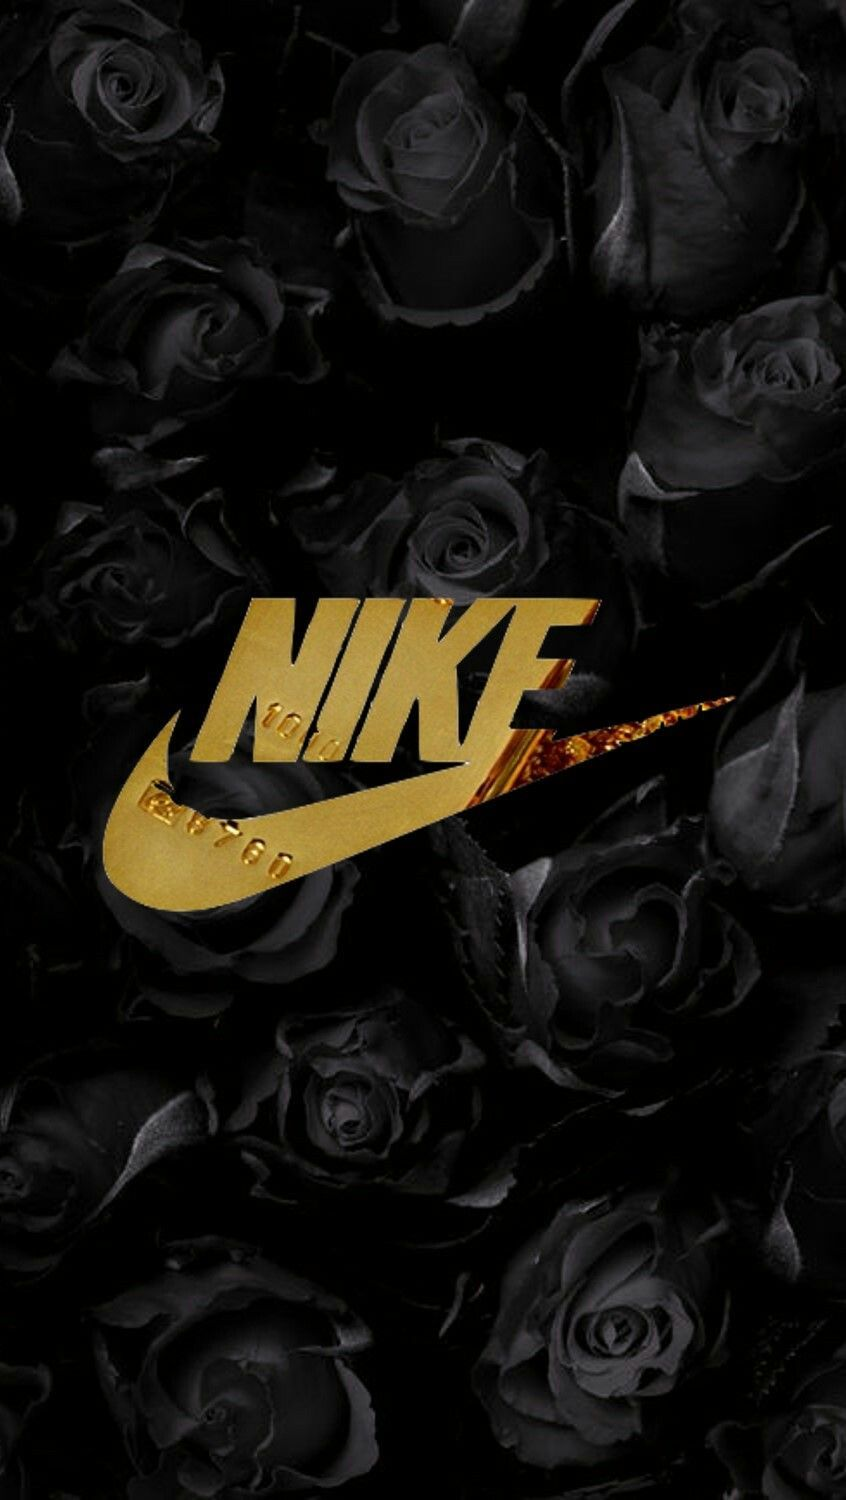 846x1500 Pin by Drew P on Nike phone wallpaper in 2019 | Nike ...